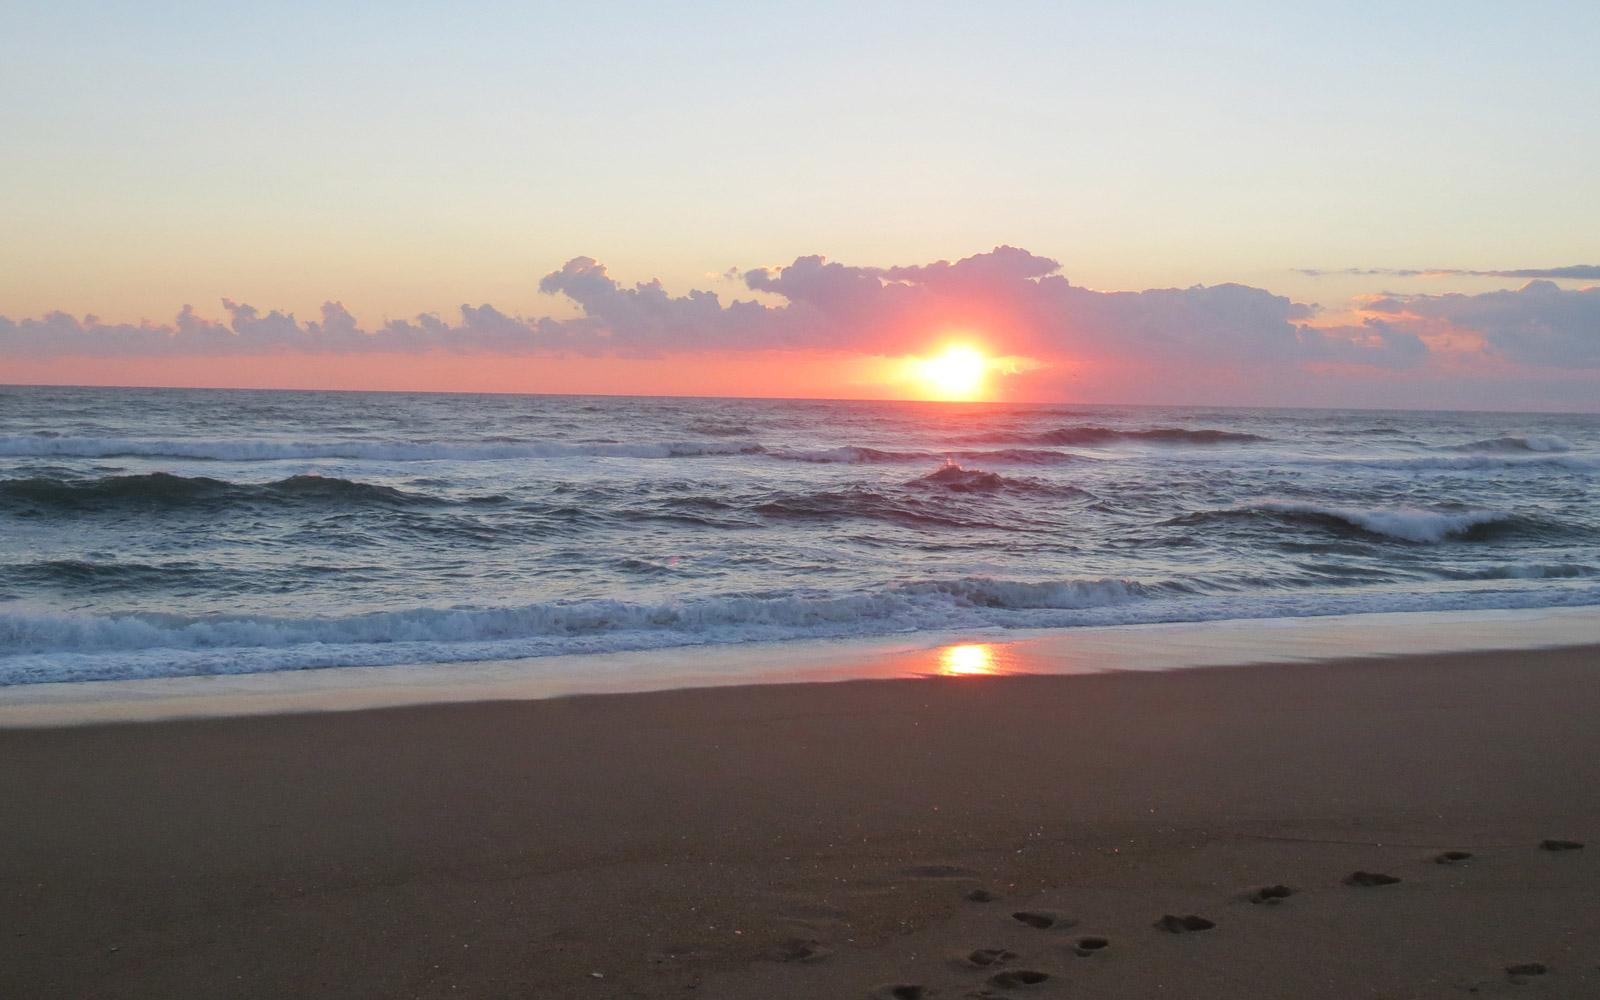 early-sunrise-at-outer-banks-north-carolina-usa-beaches-16001000_image